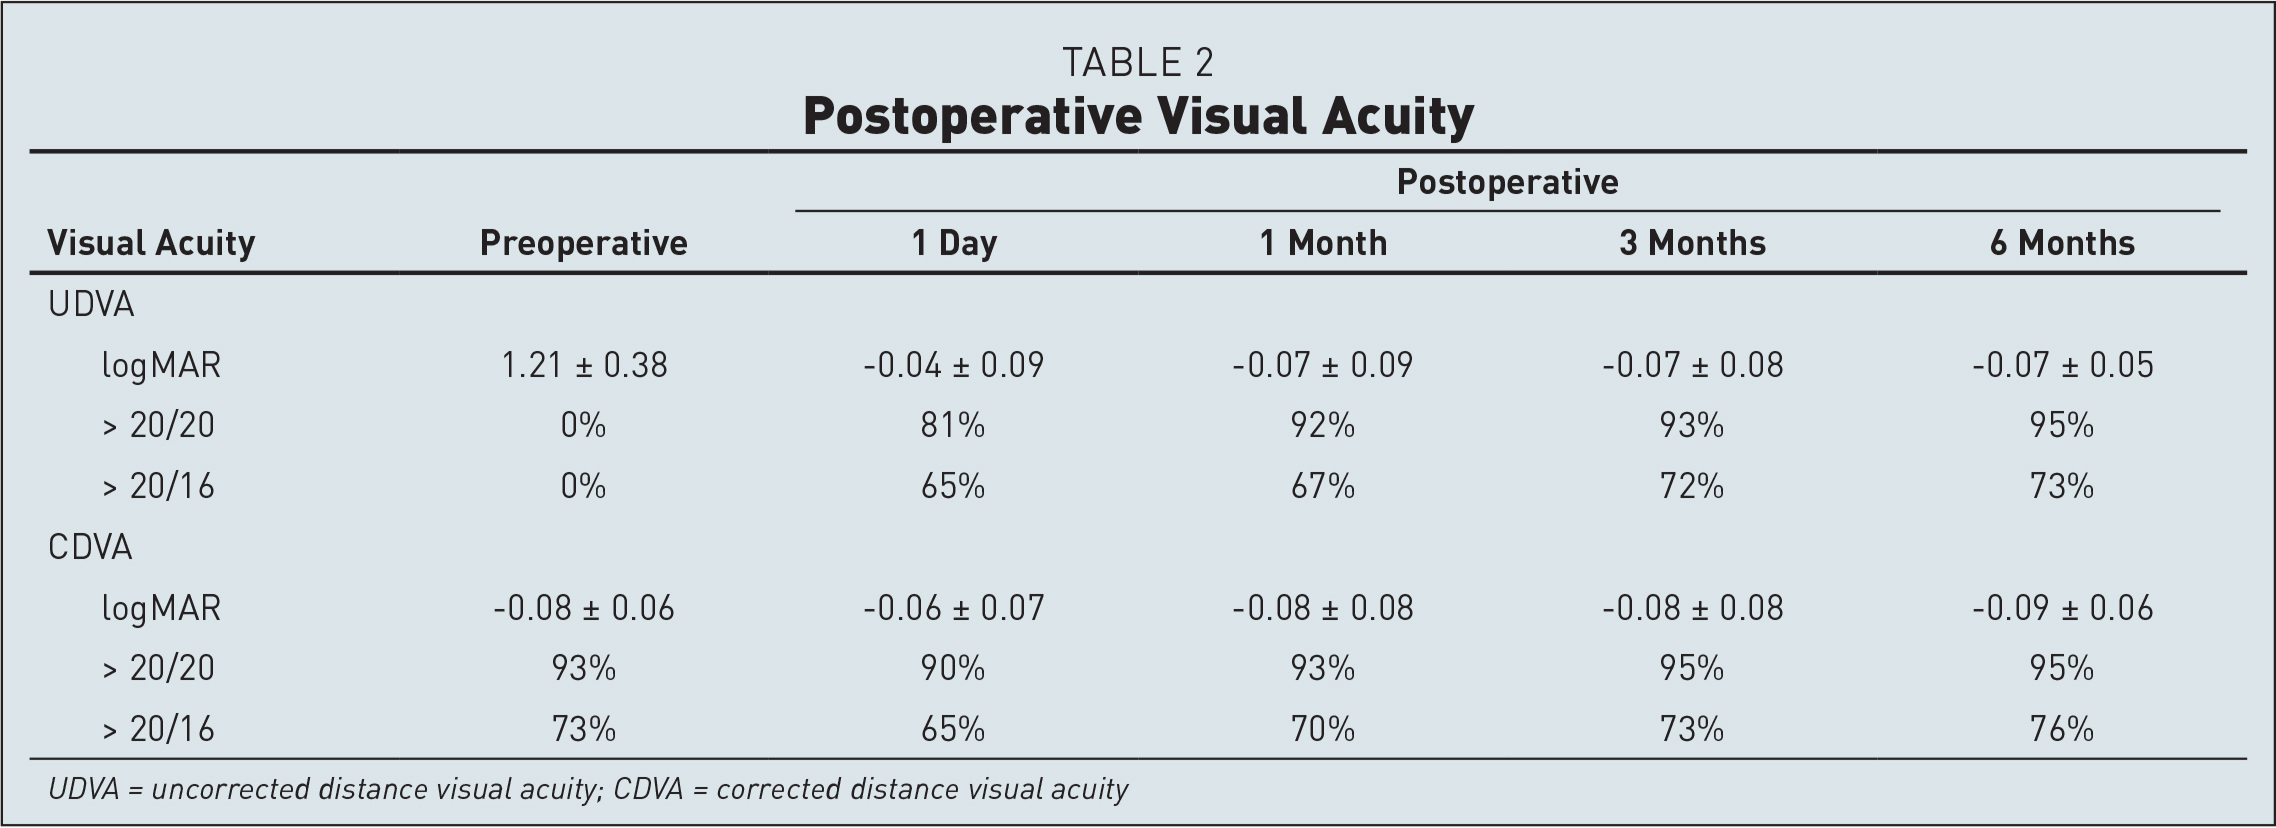 Postoperative Visual Acuity